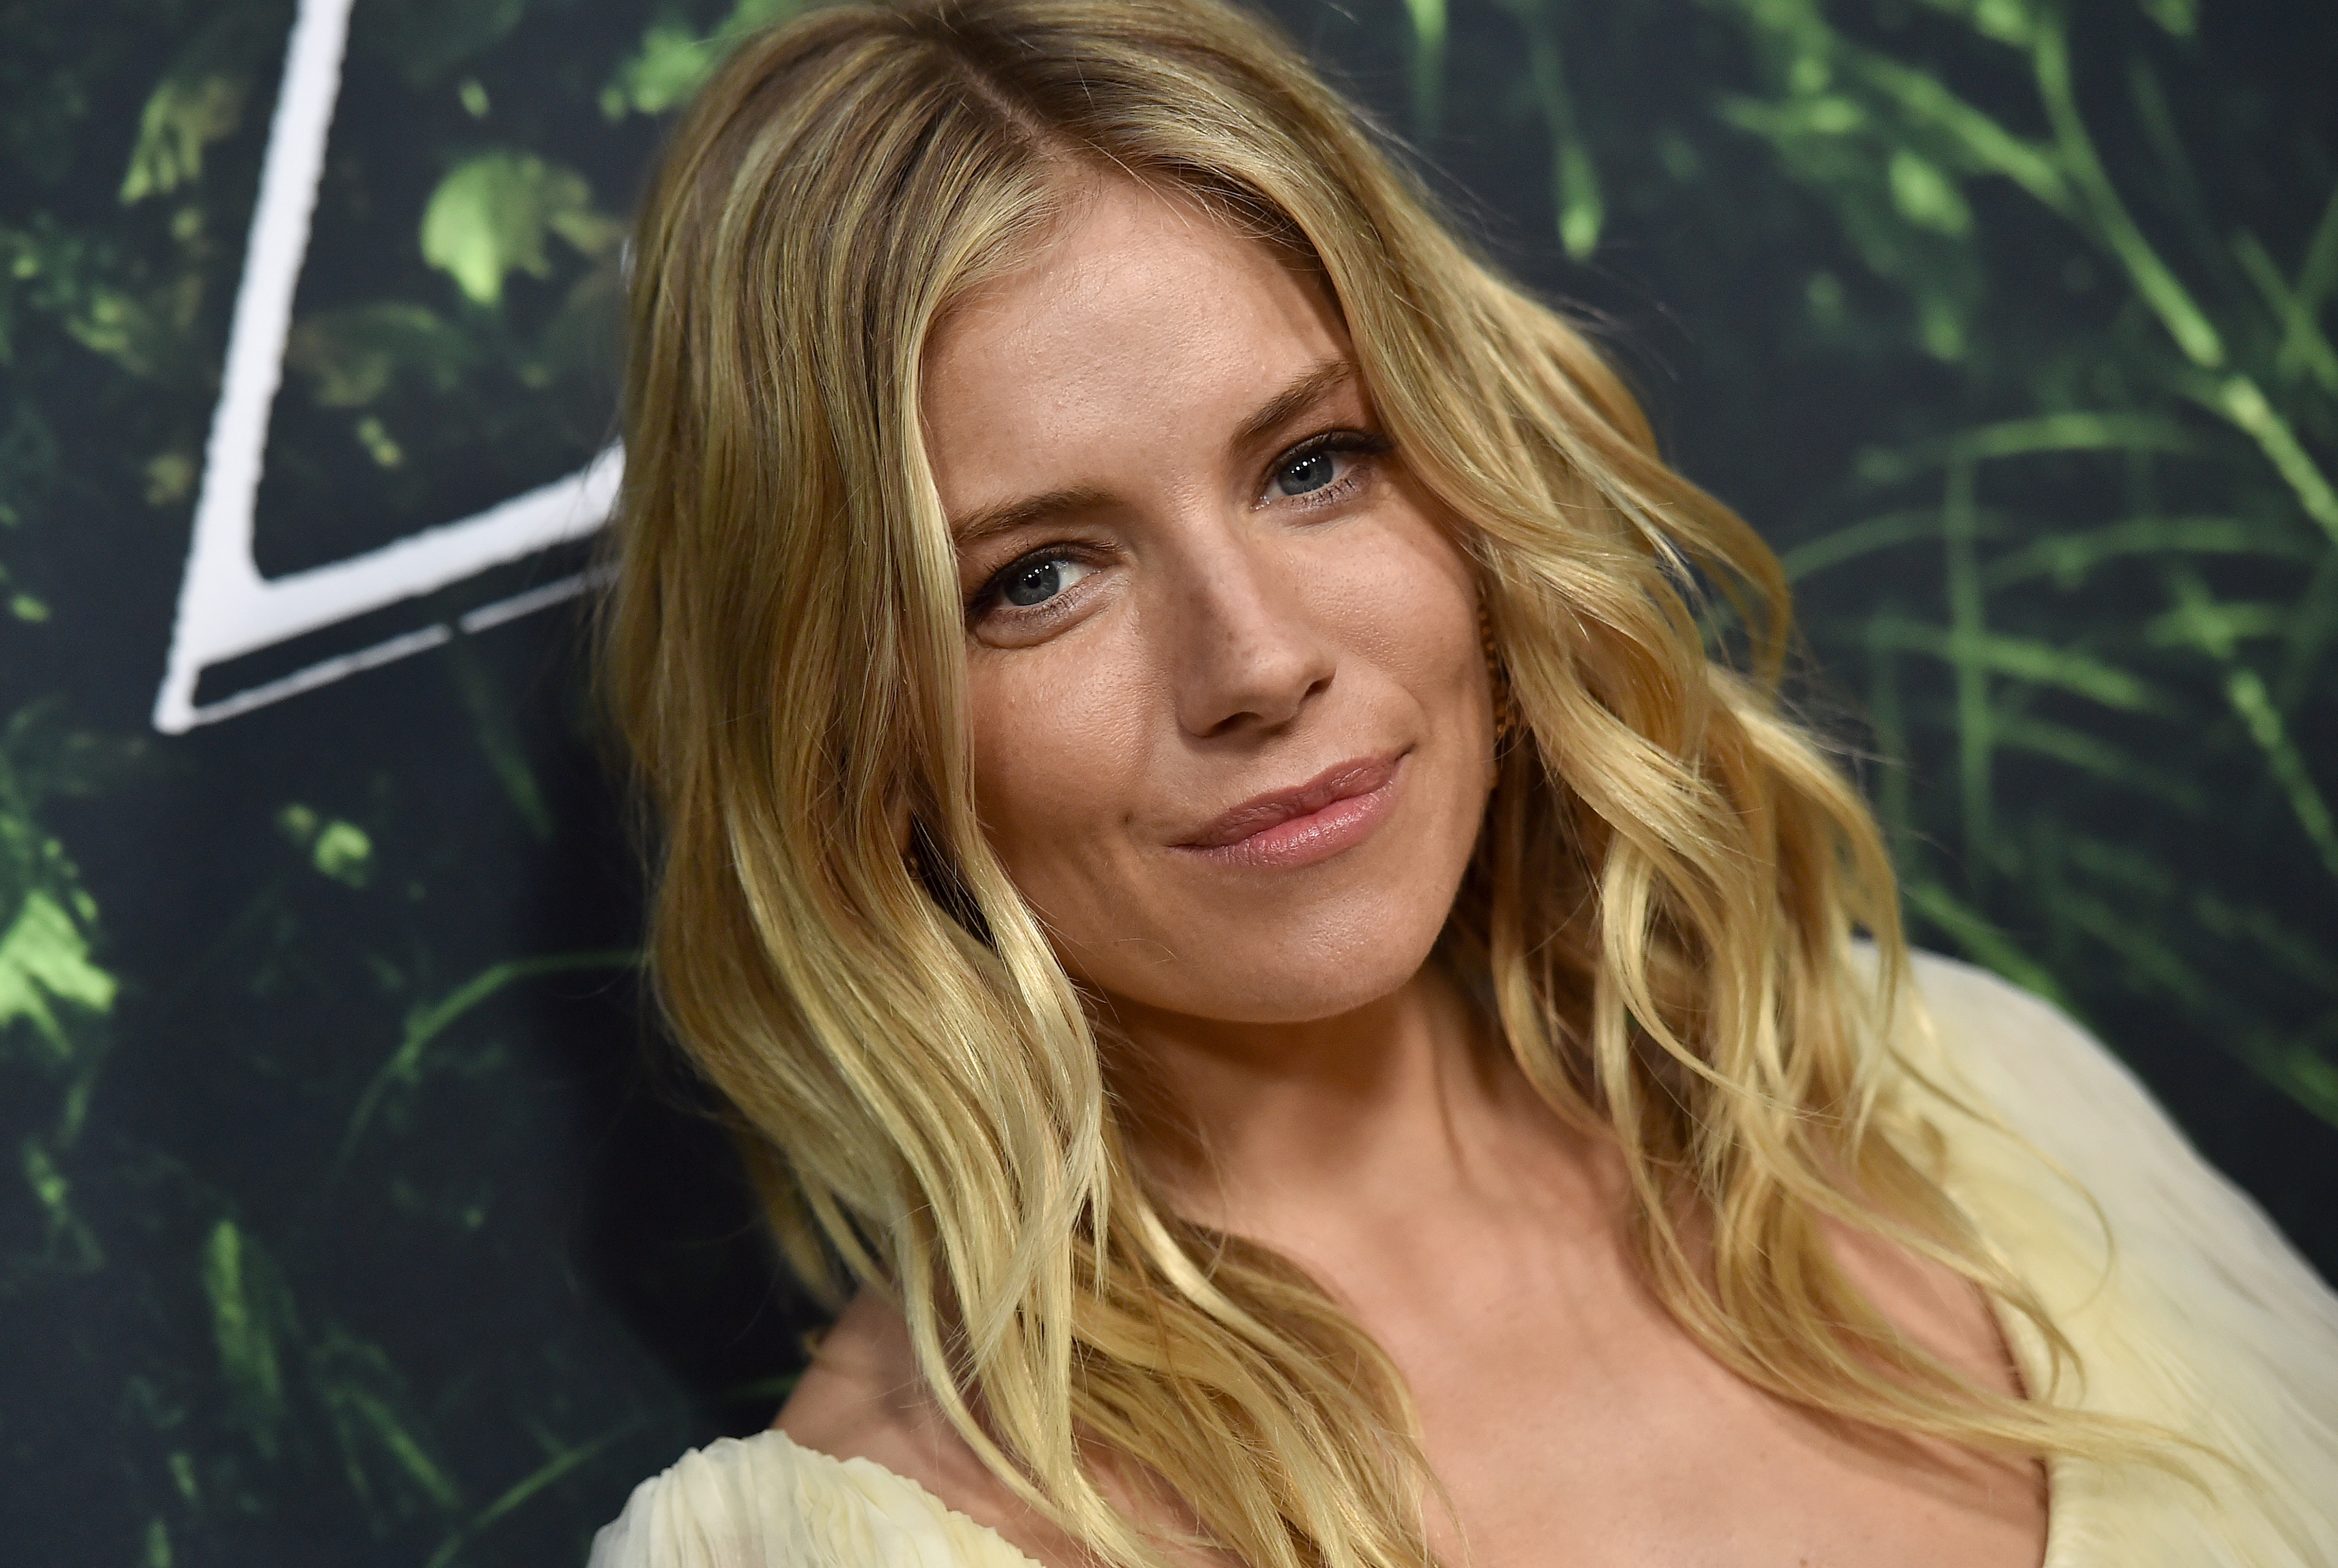 Sienna Miller dismisses Brad Pitt romance rumours as 'predictable and silly'